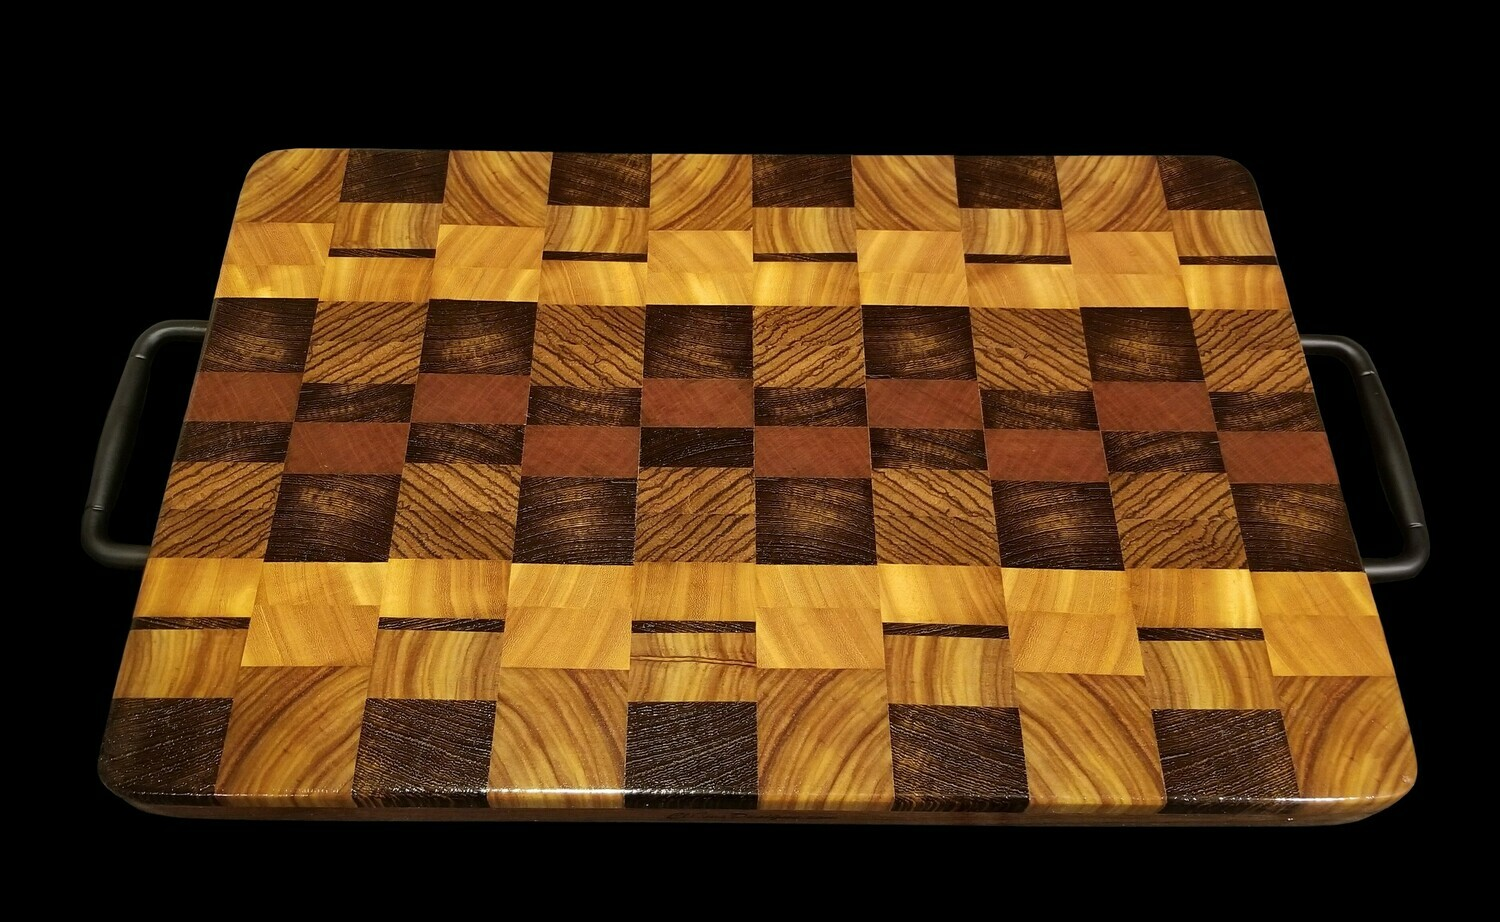 "Cutting Board, 2 Layer, End Grain, 17"" x 12"" x 1 1/2"" Thick"